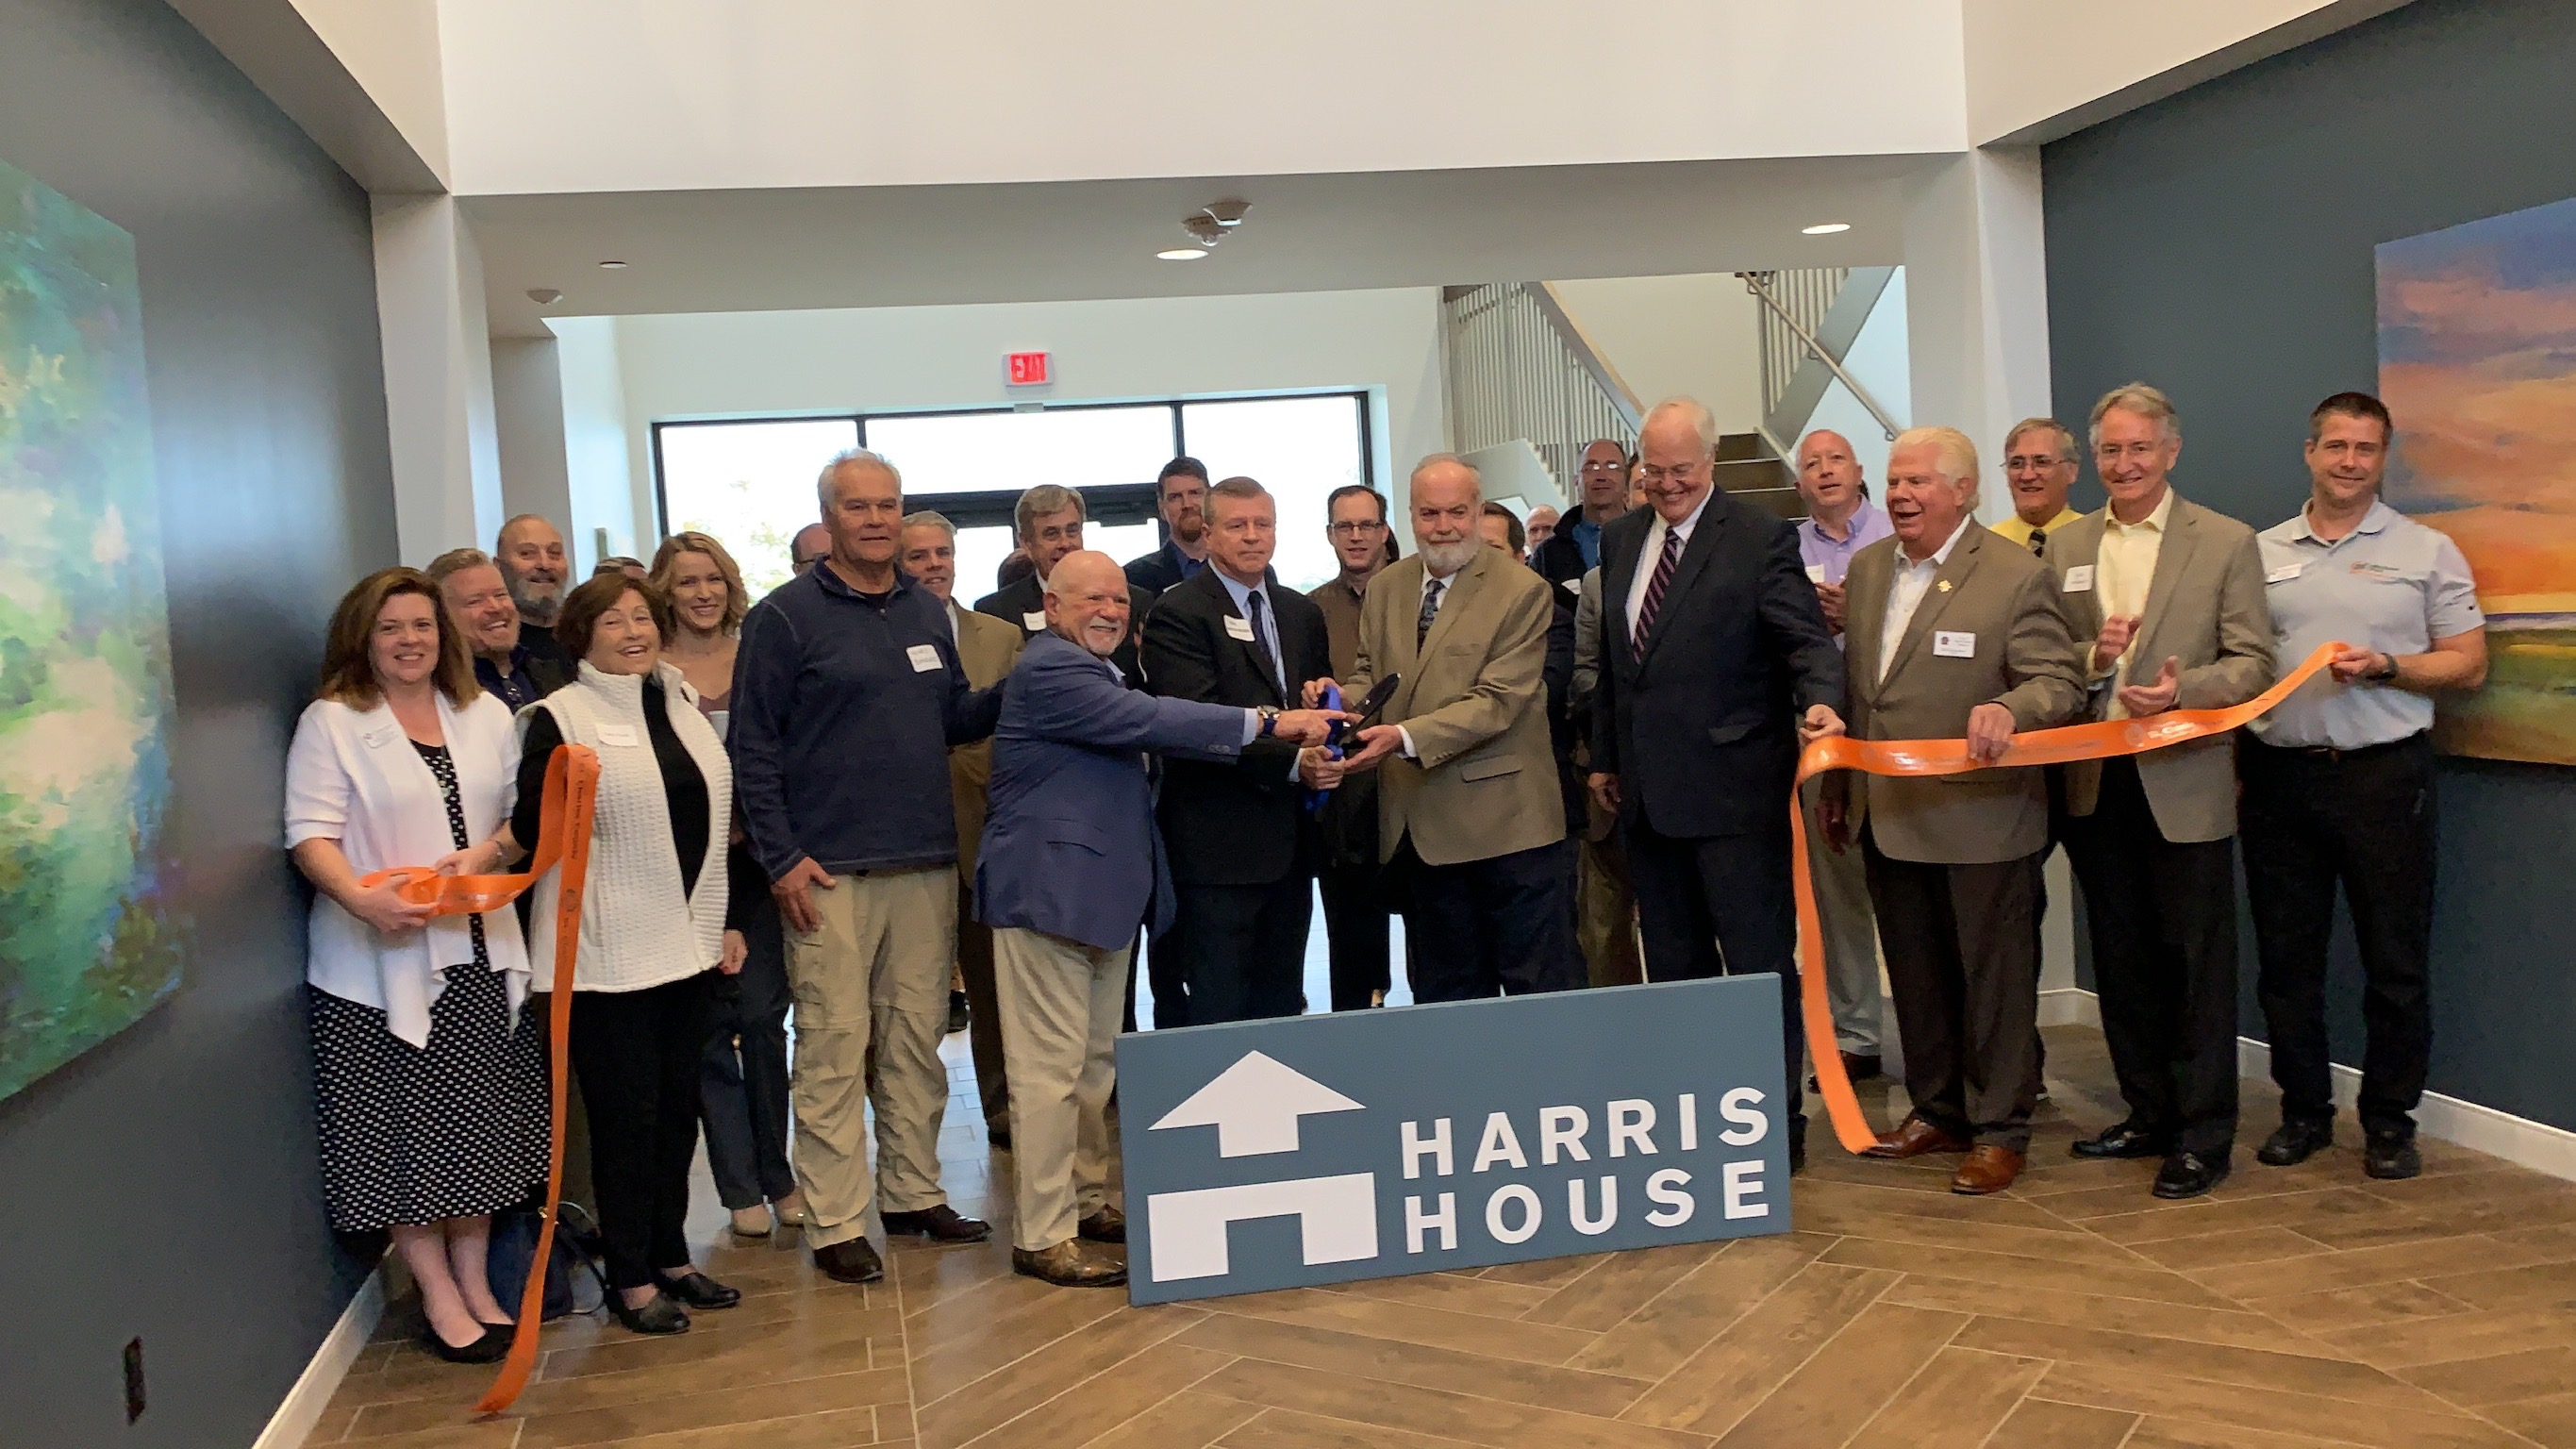 Harris House Celebrates  Grand Opening with Ribbon Cutting